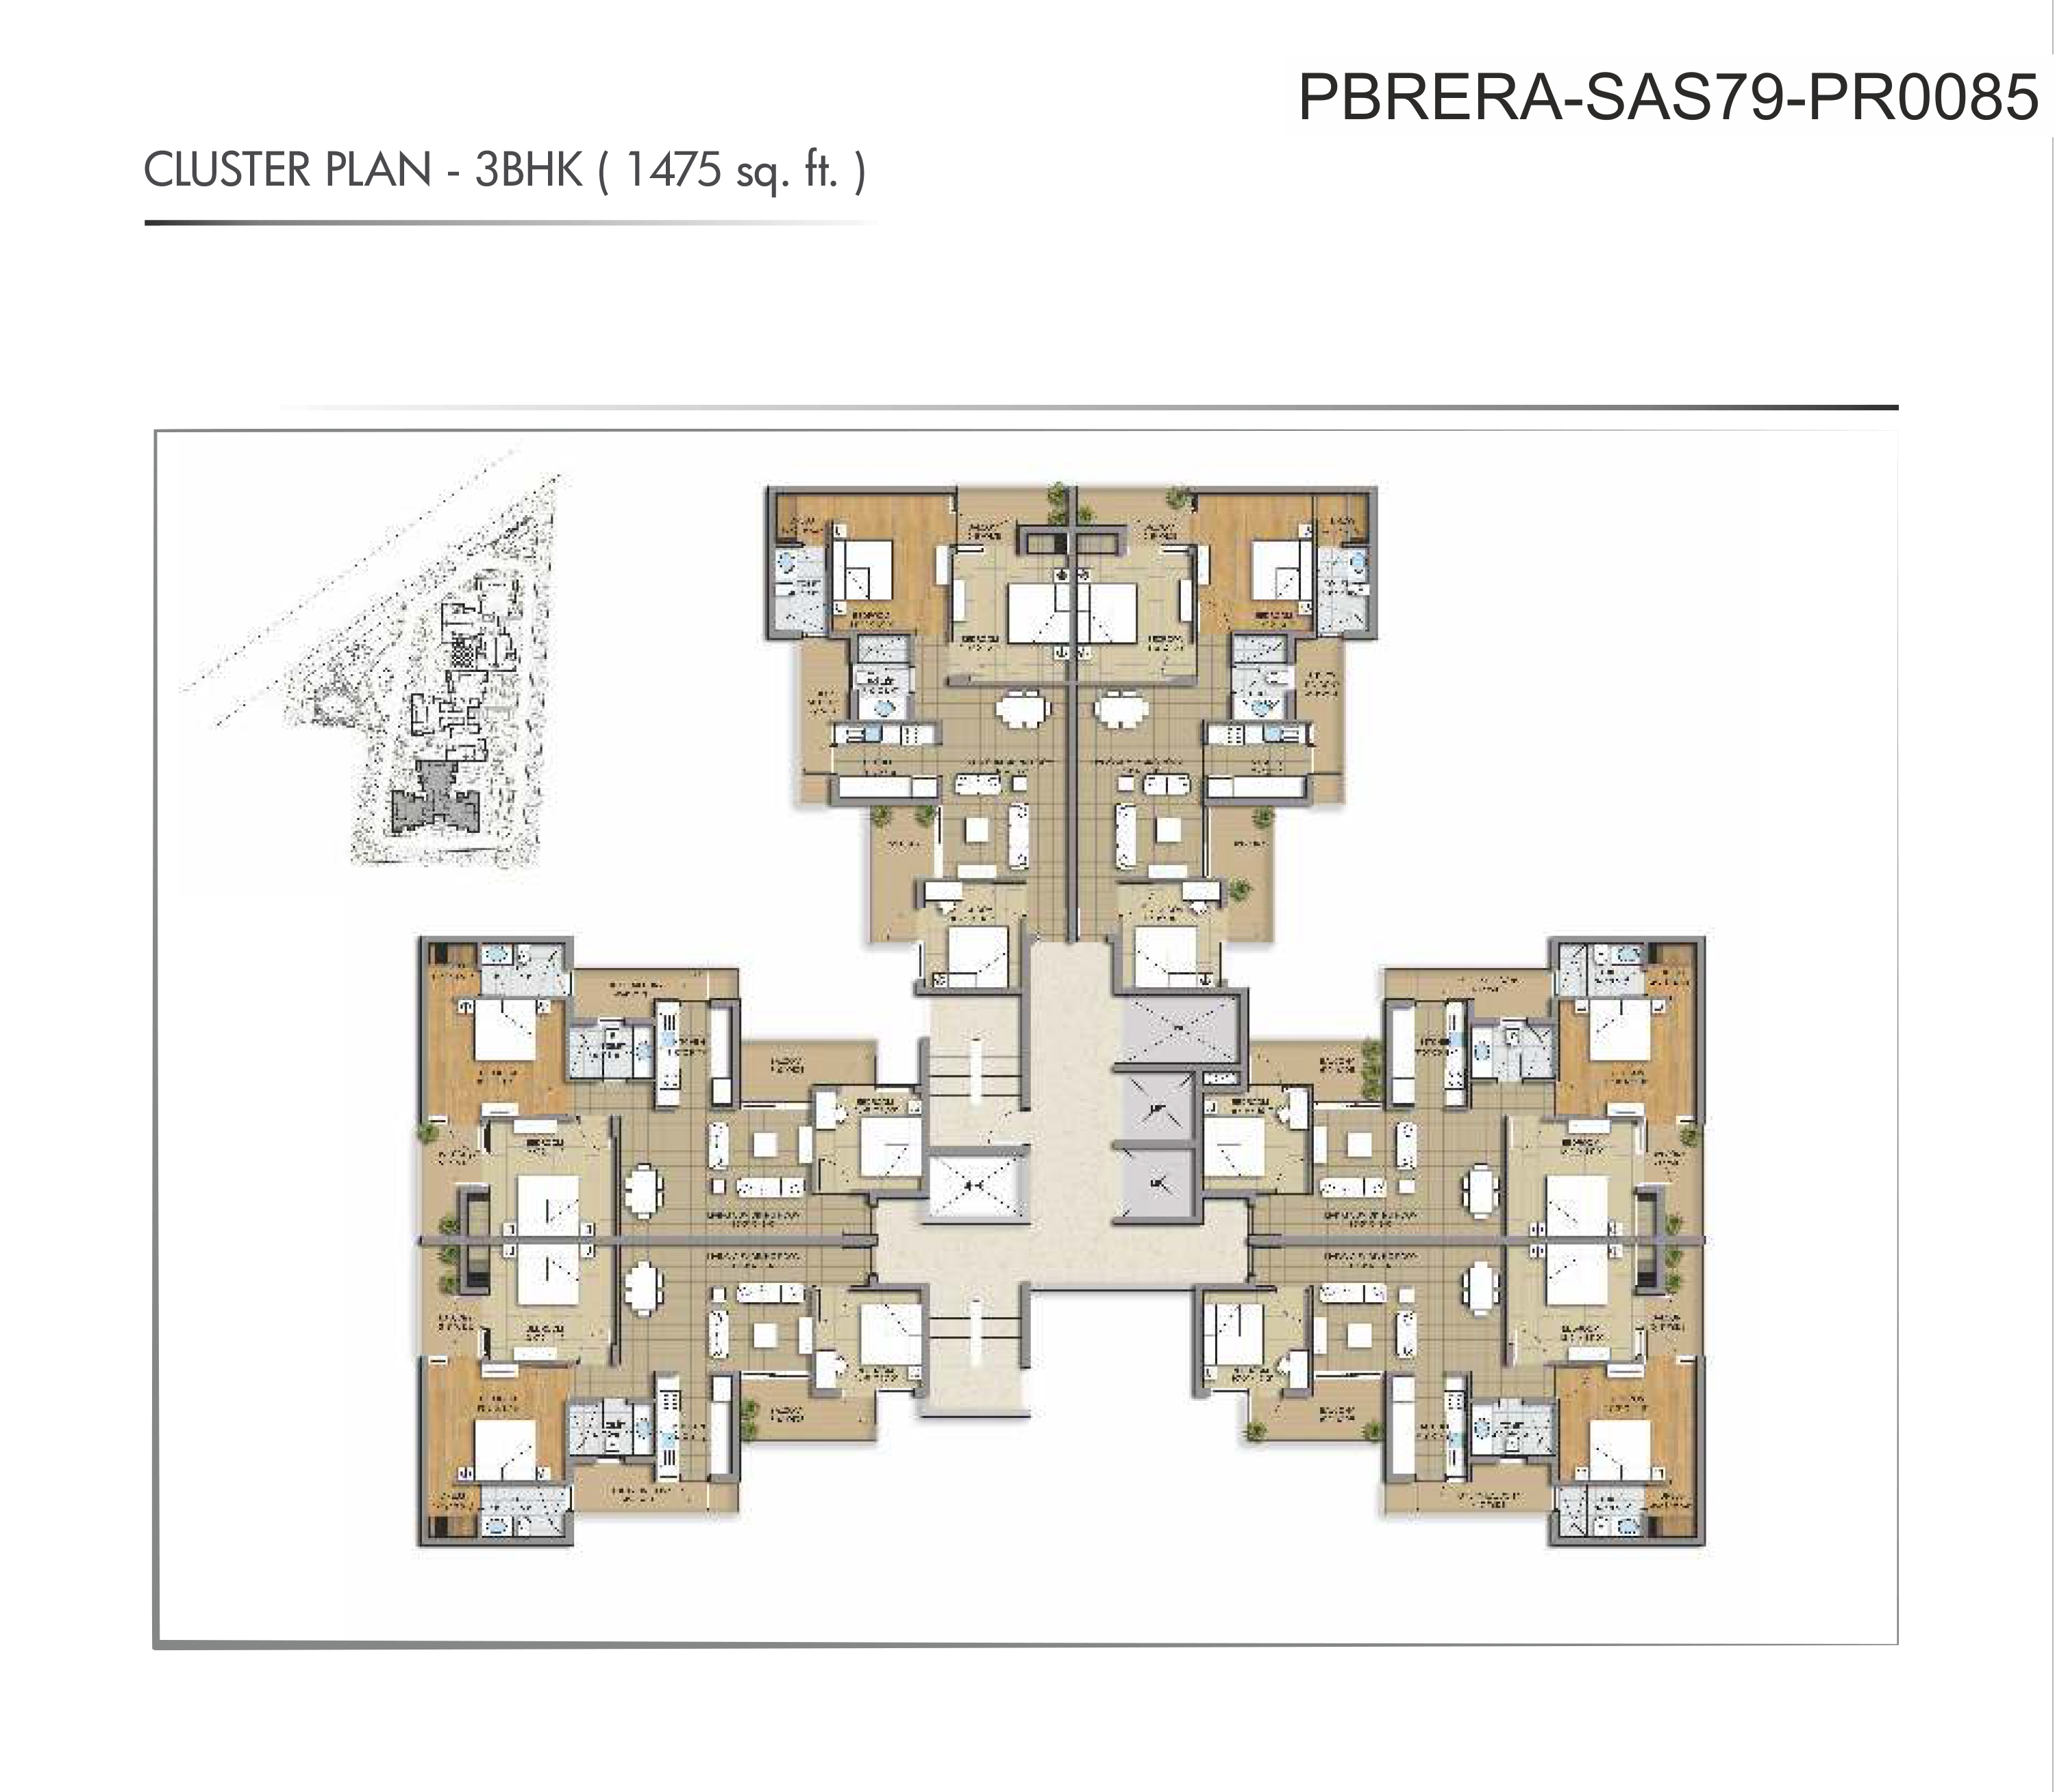 Cluster Plan-3BHK (1475sq-ft)